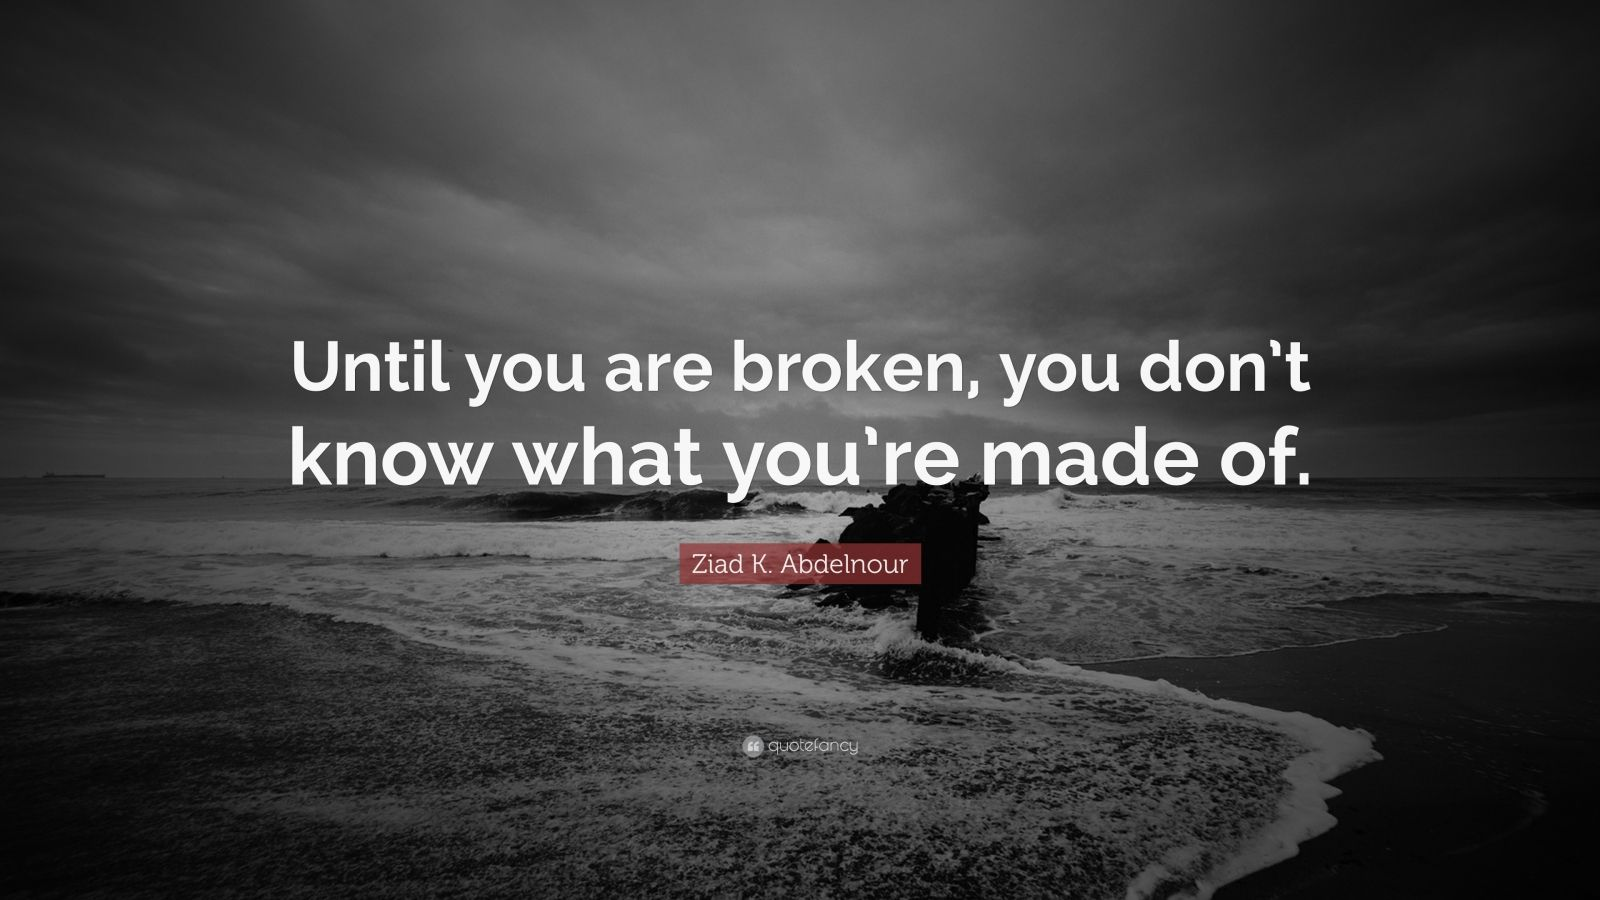 """Ziad K. Abdelnour Quote: """"Until you are broken, you don't know what you're made of."""""""